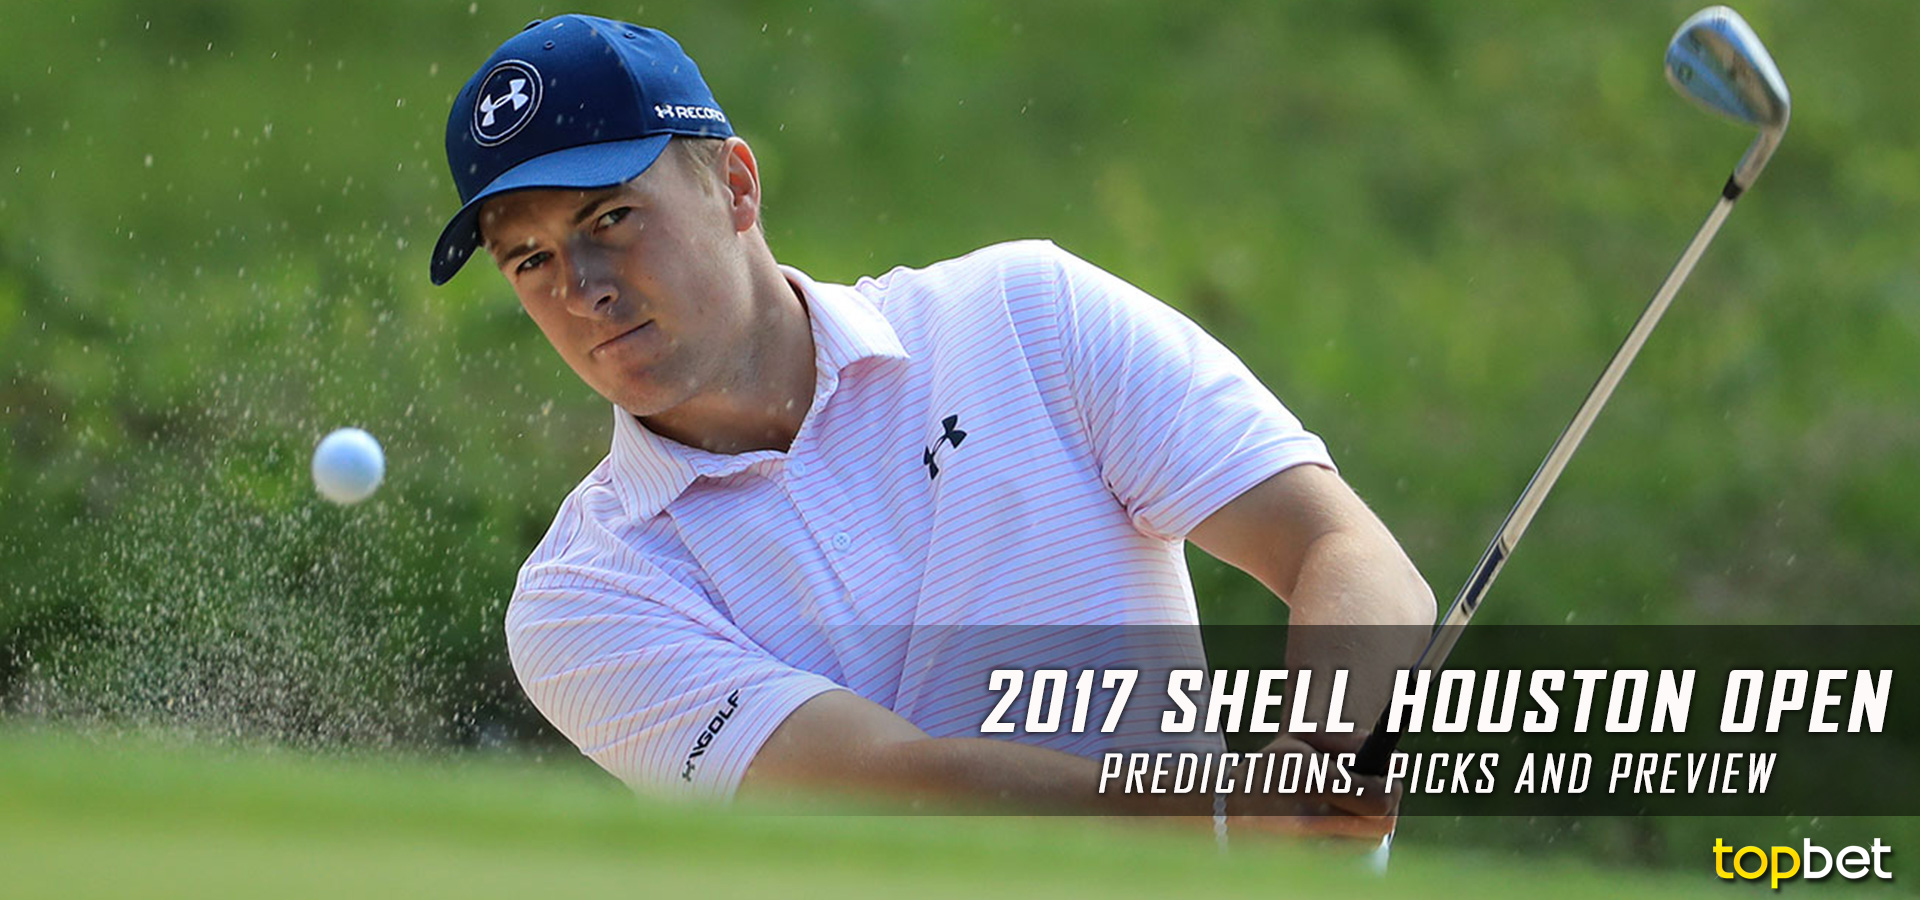 History of the Shell Houston Open